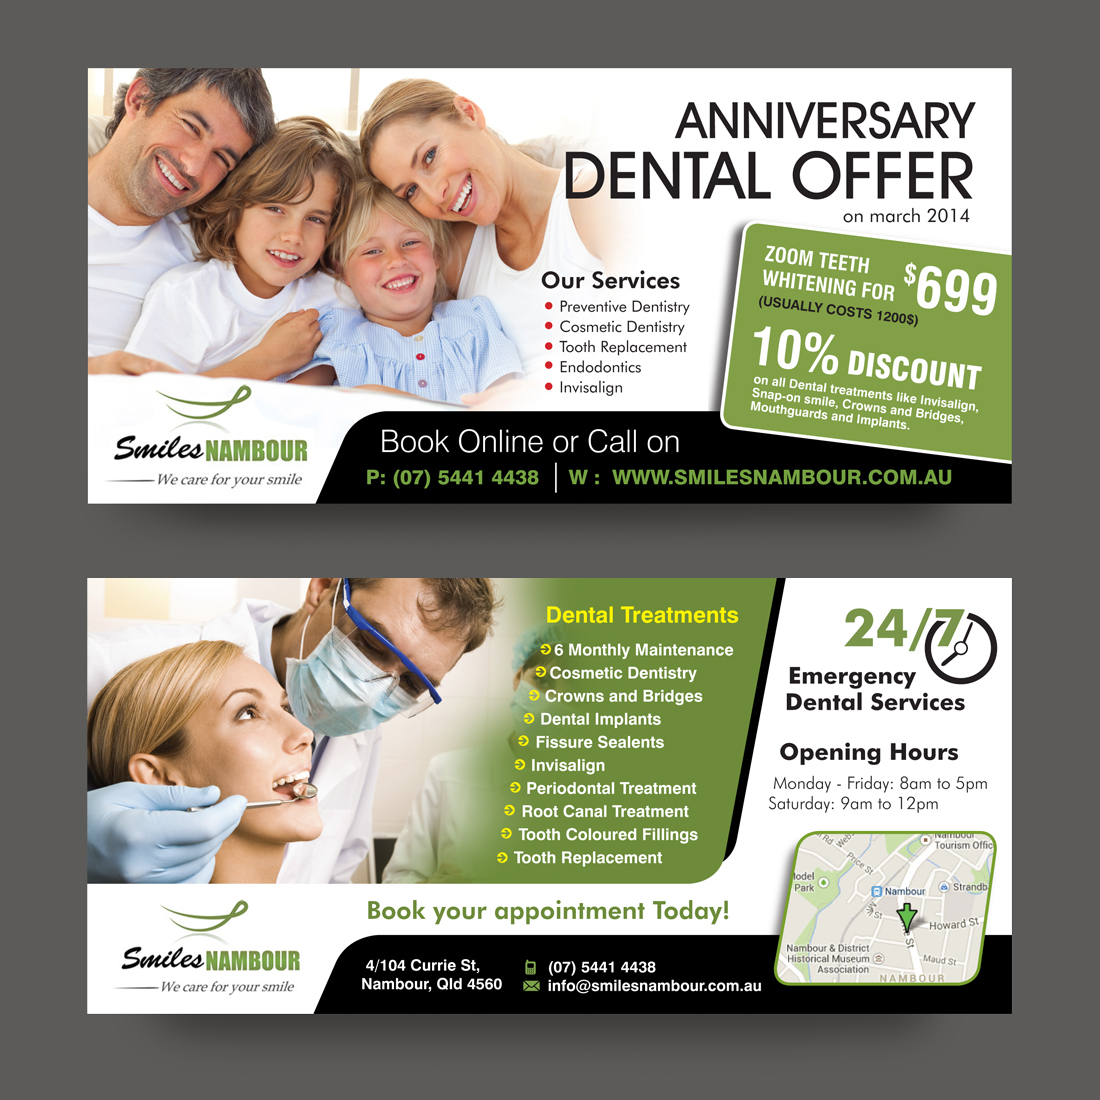 dental flyer design galleries for inspiration dental clinic flyer design by rkailas